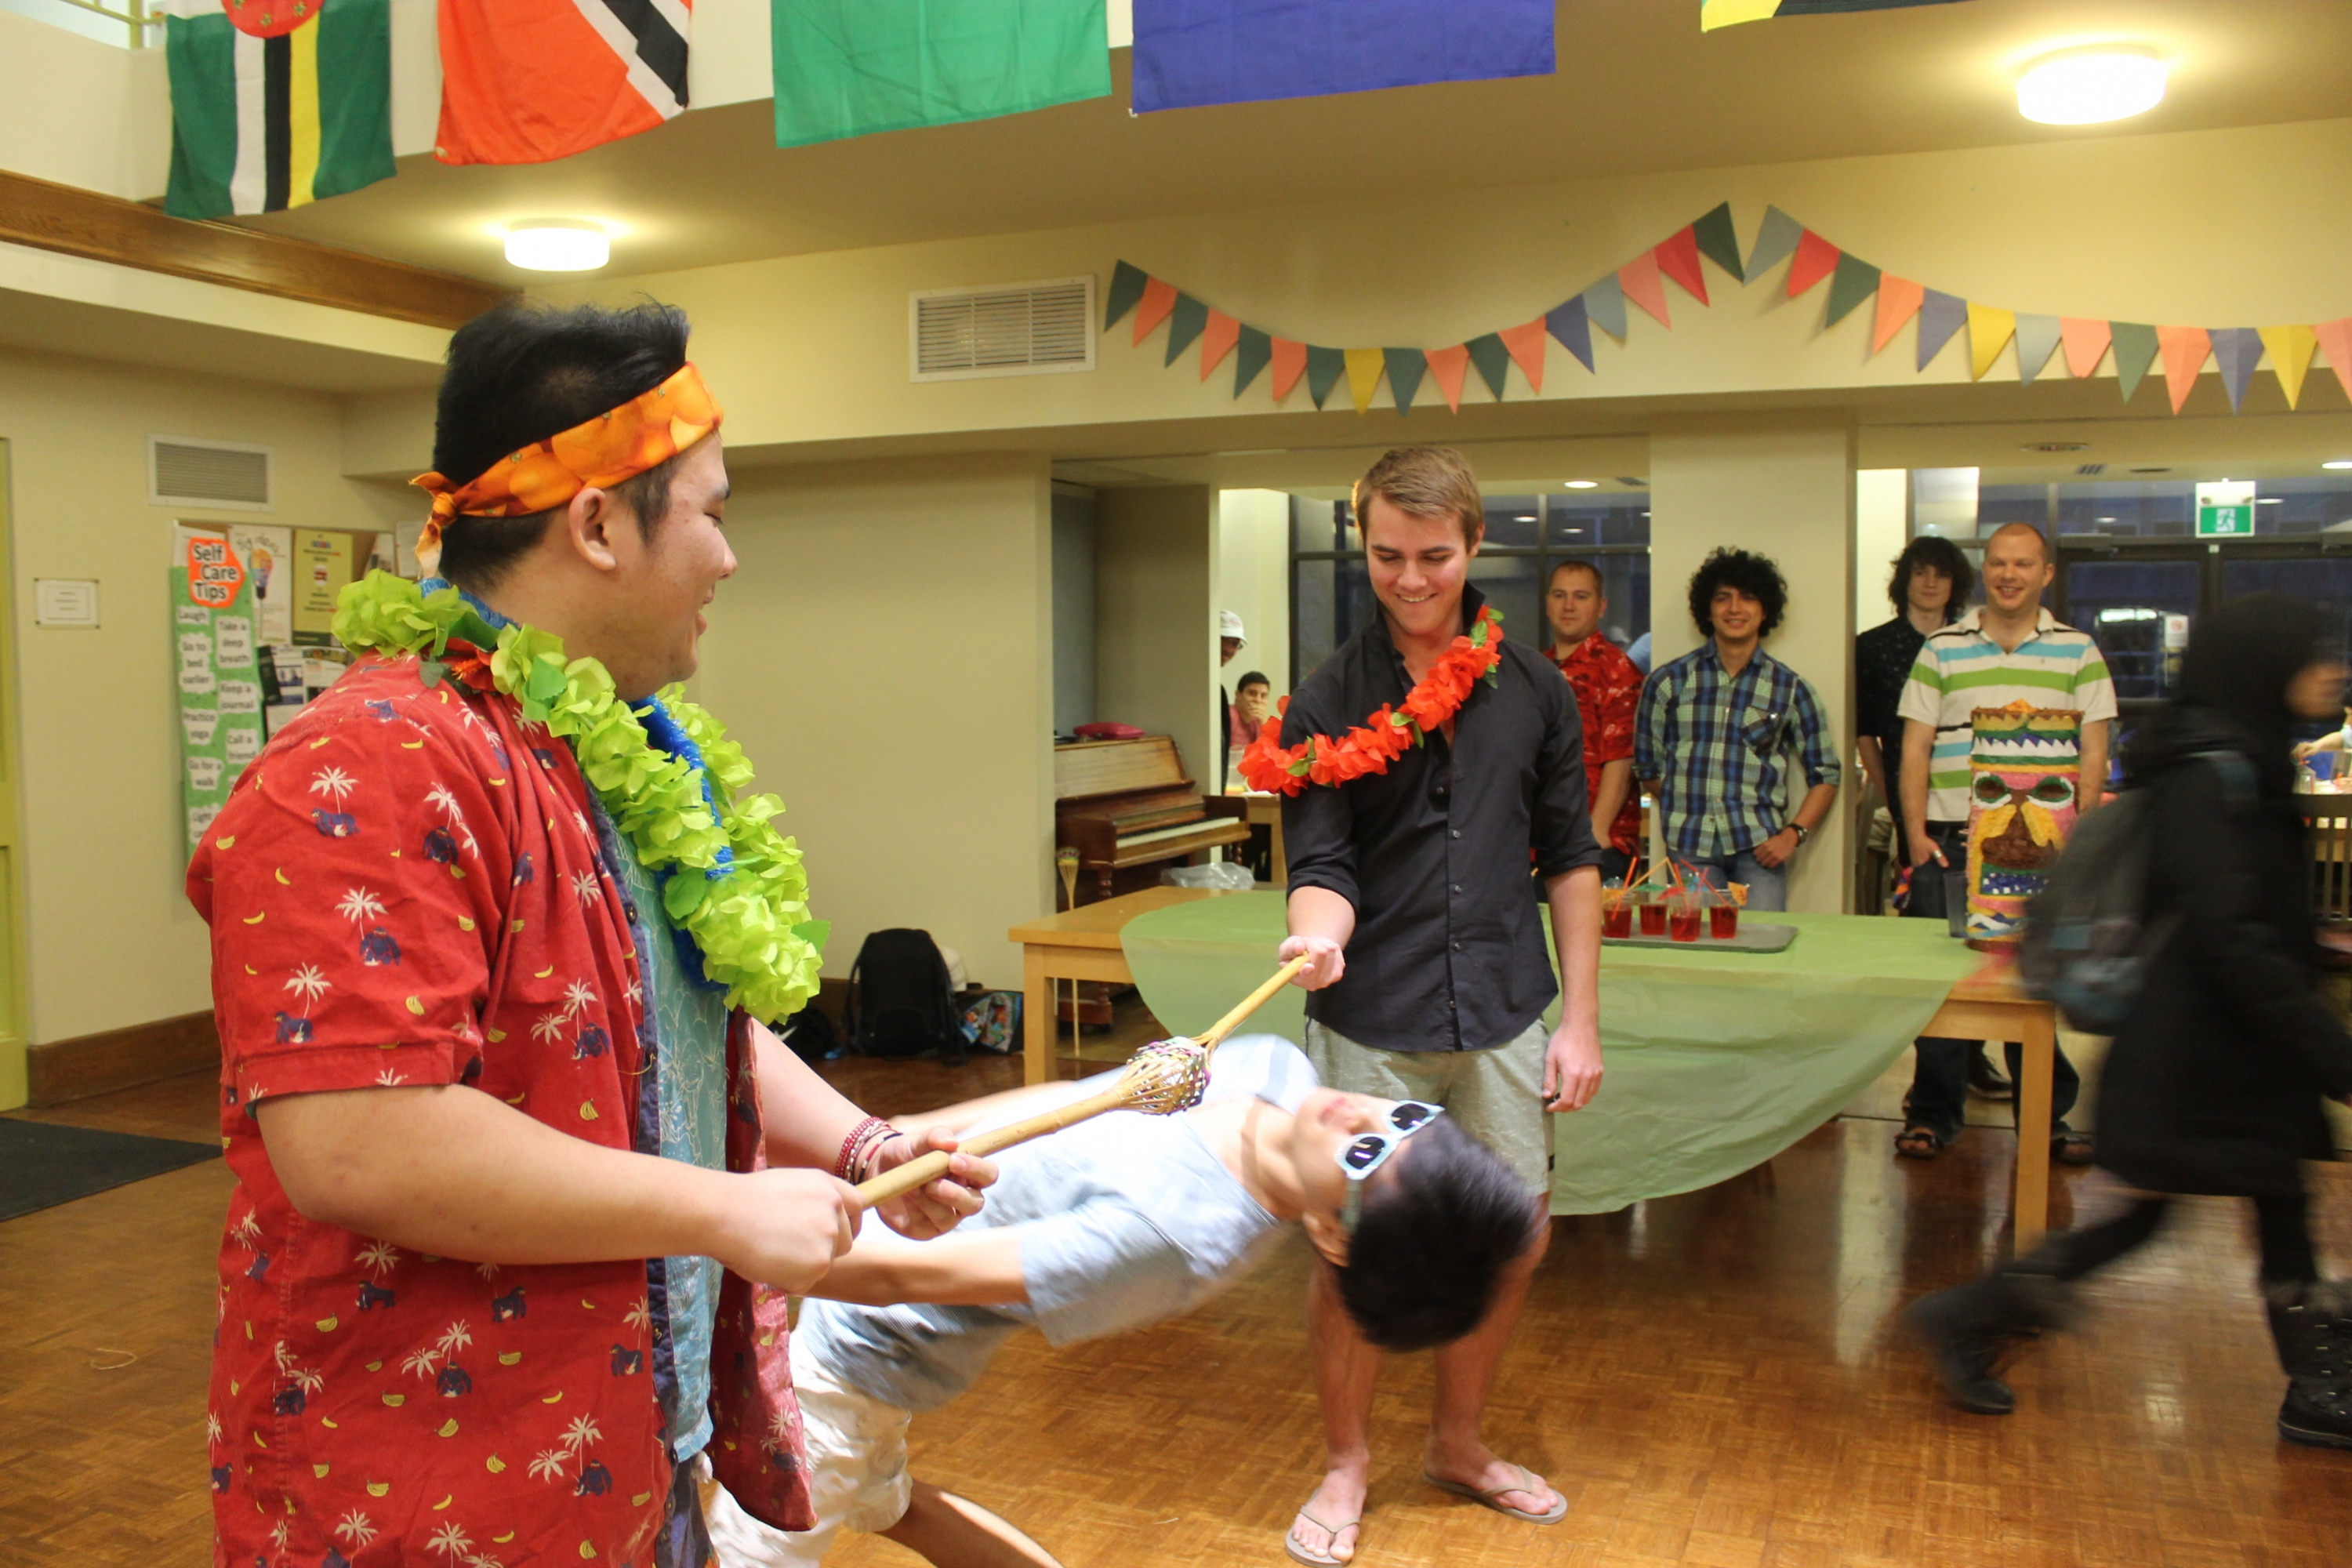 Renison residents doing limbo at Beach College Dinner